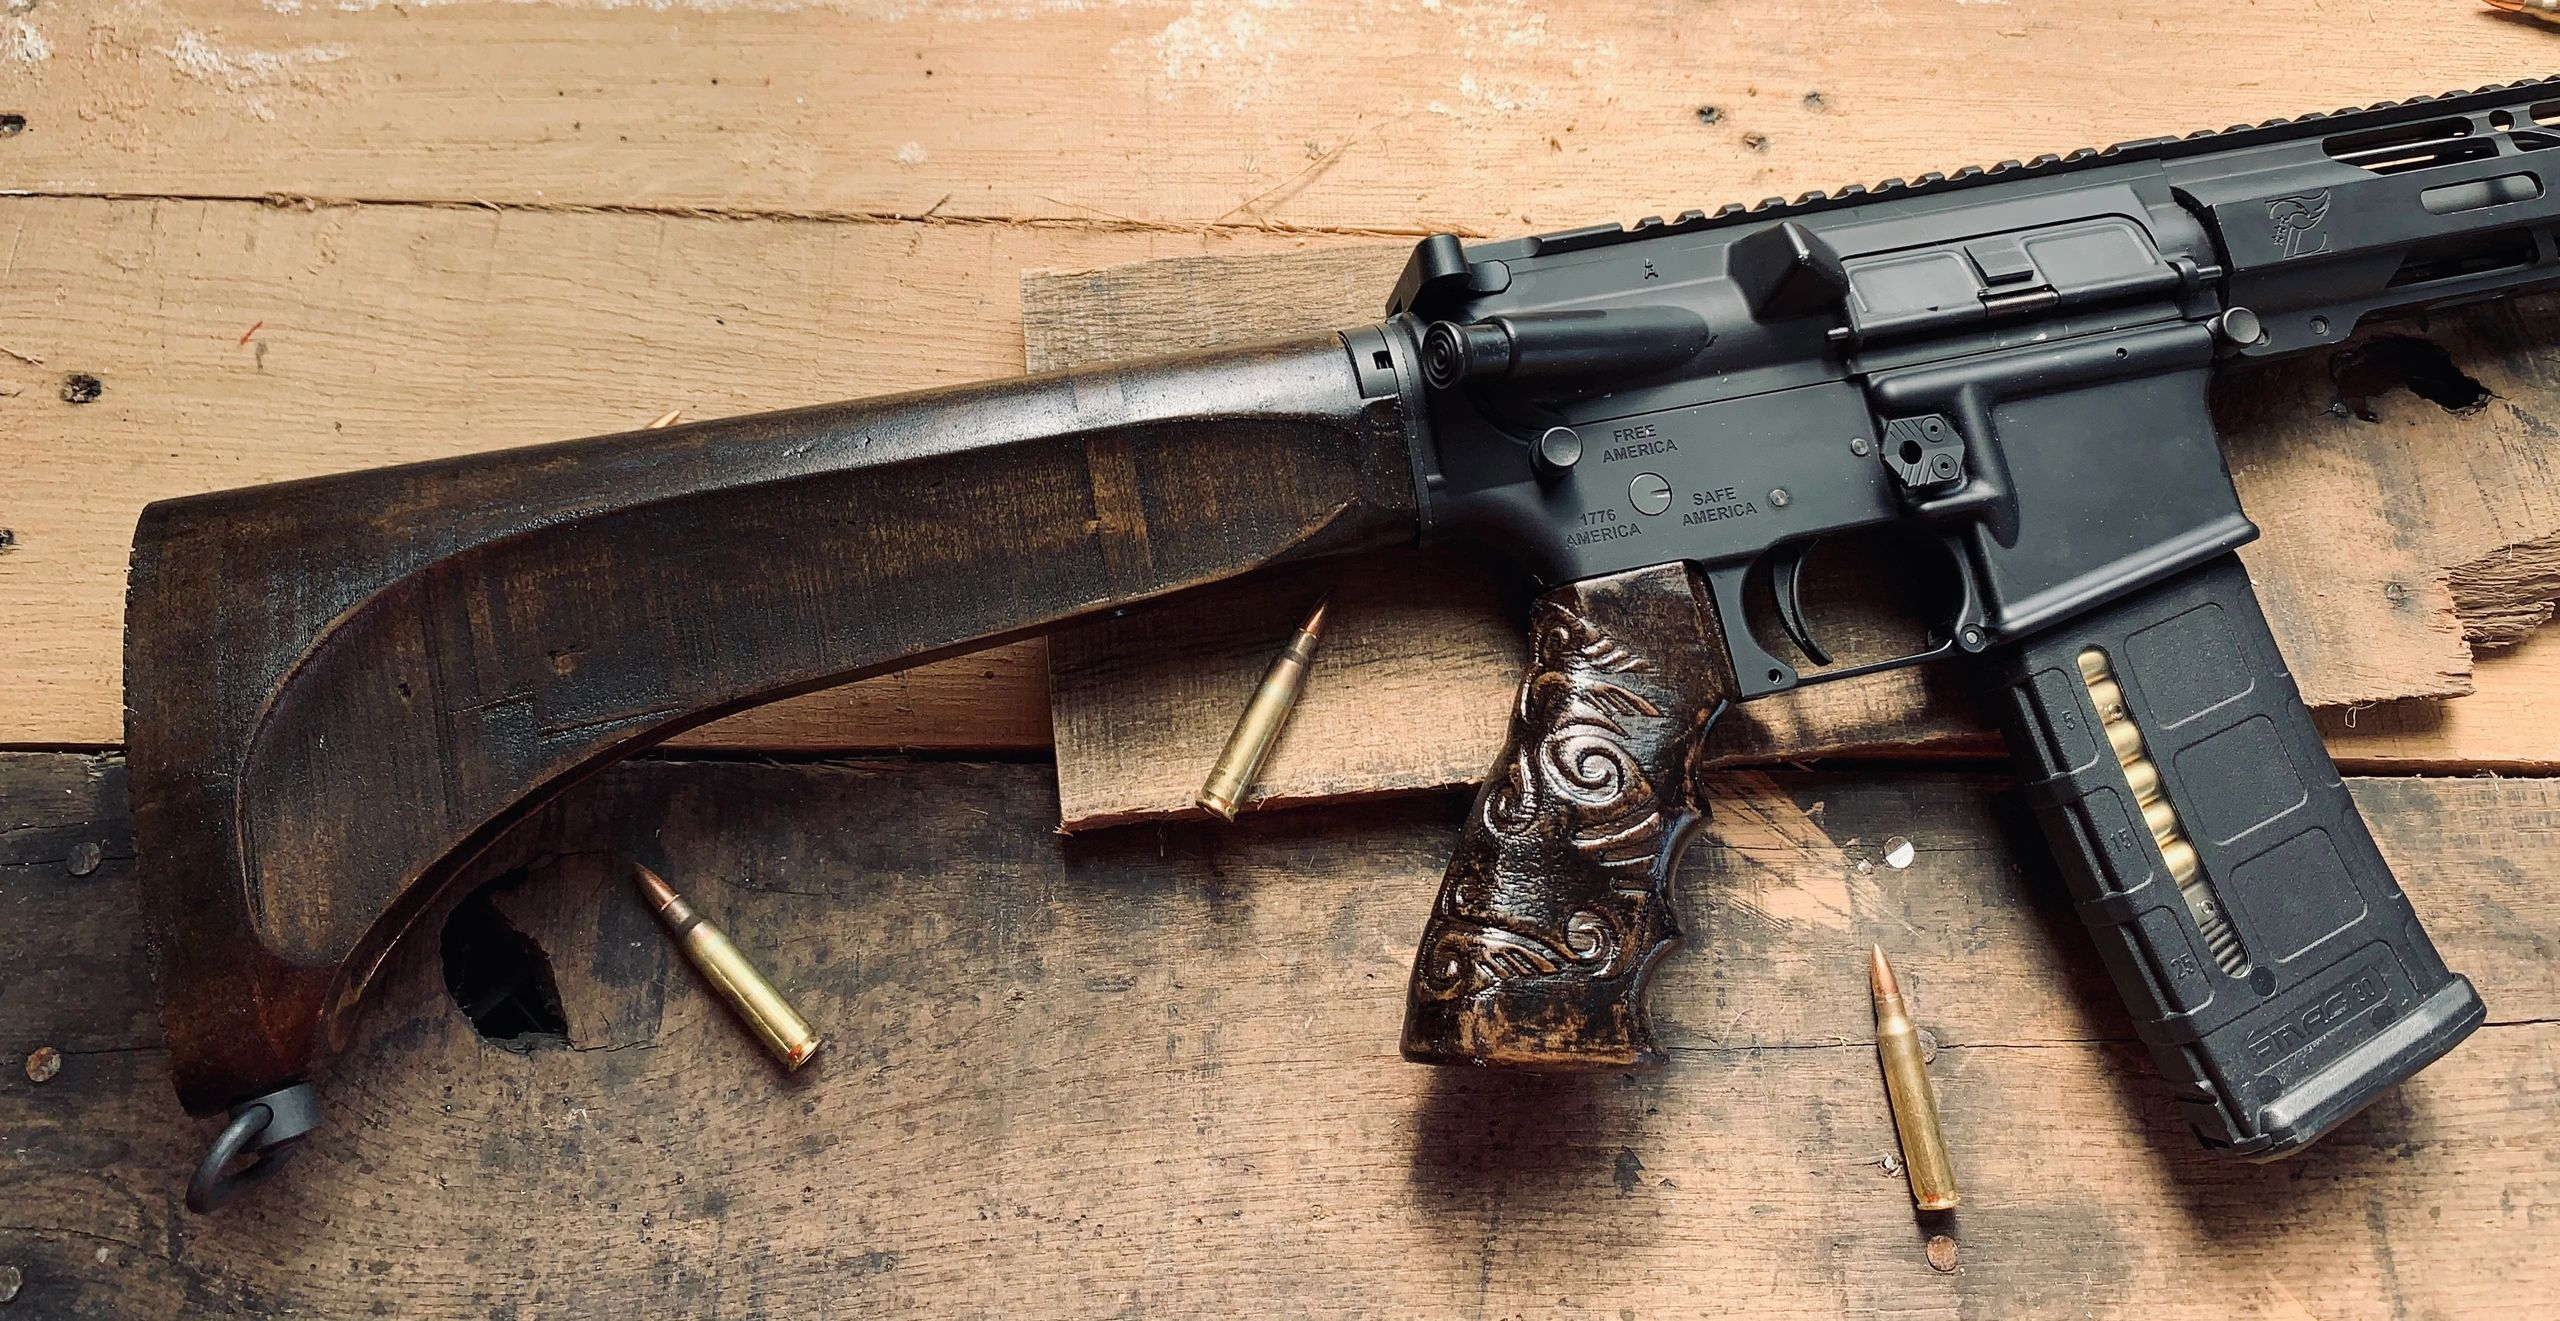 Pioneer AR-15 Buttstock and Blackwood Grip